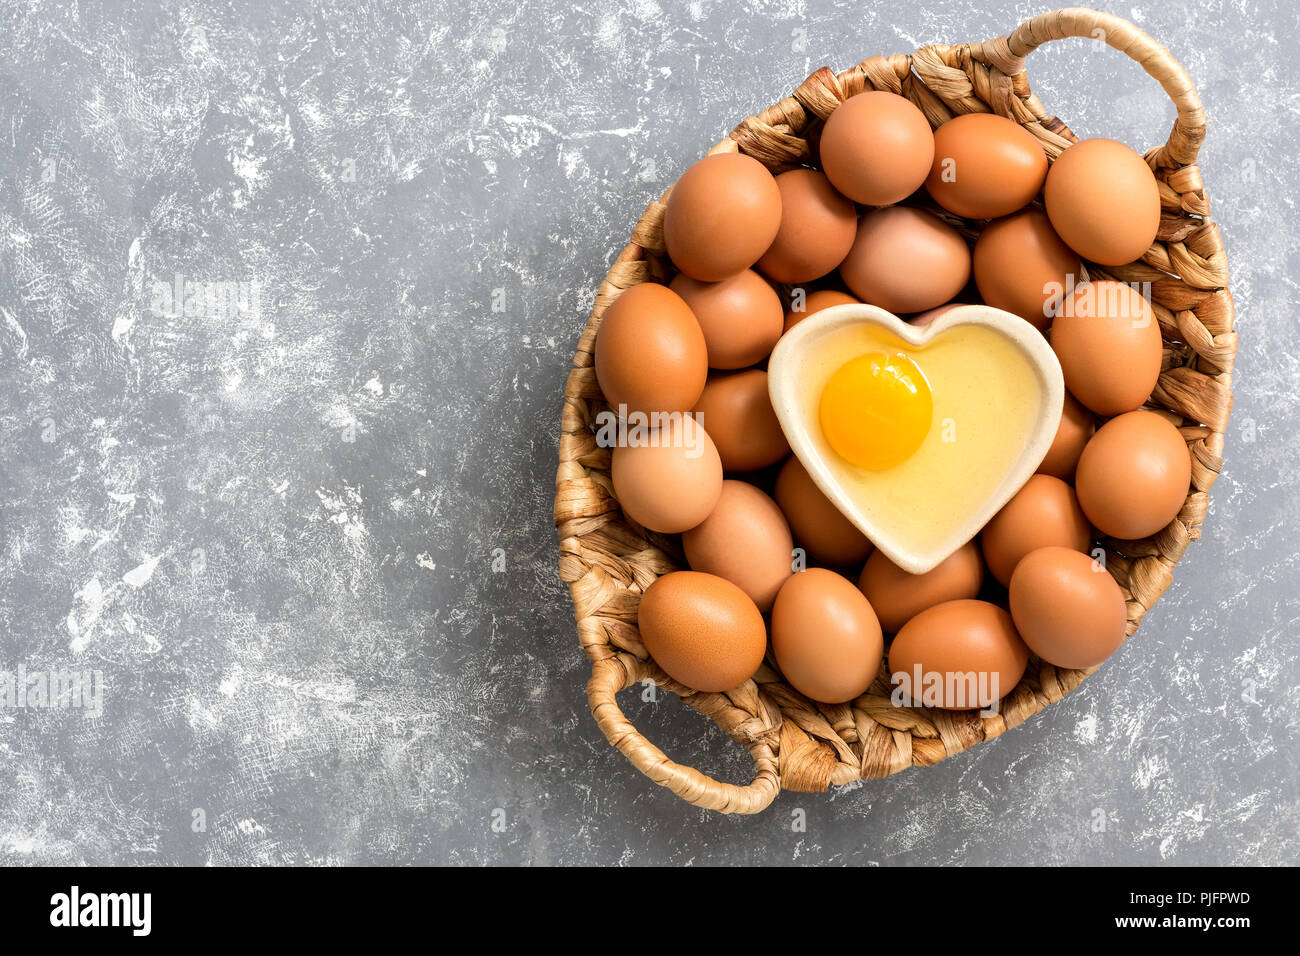 A raw egg in a bowl in the shape of a heart, a basket with brown eggs on a gray background. Top view, copy space, flat lay. Stock Photo